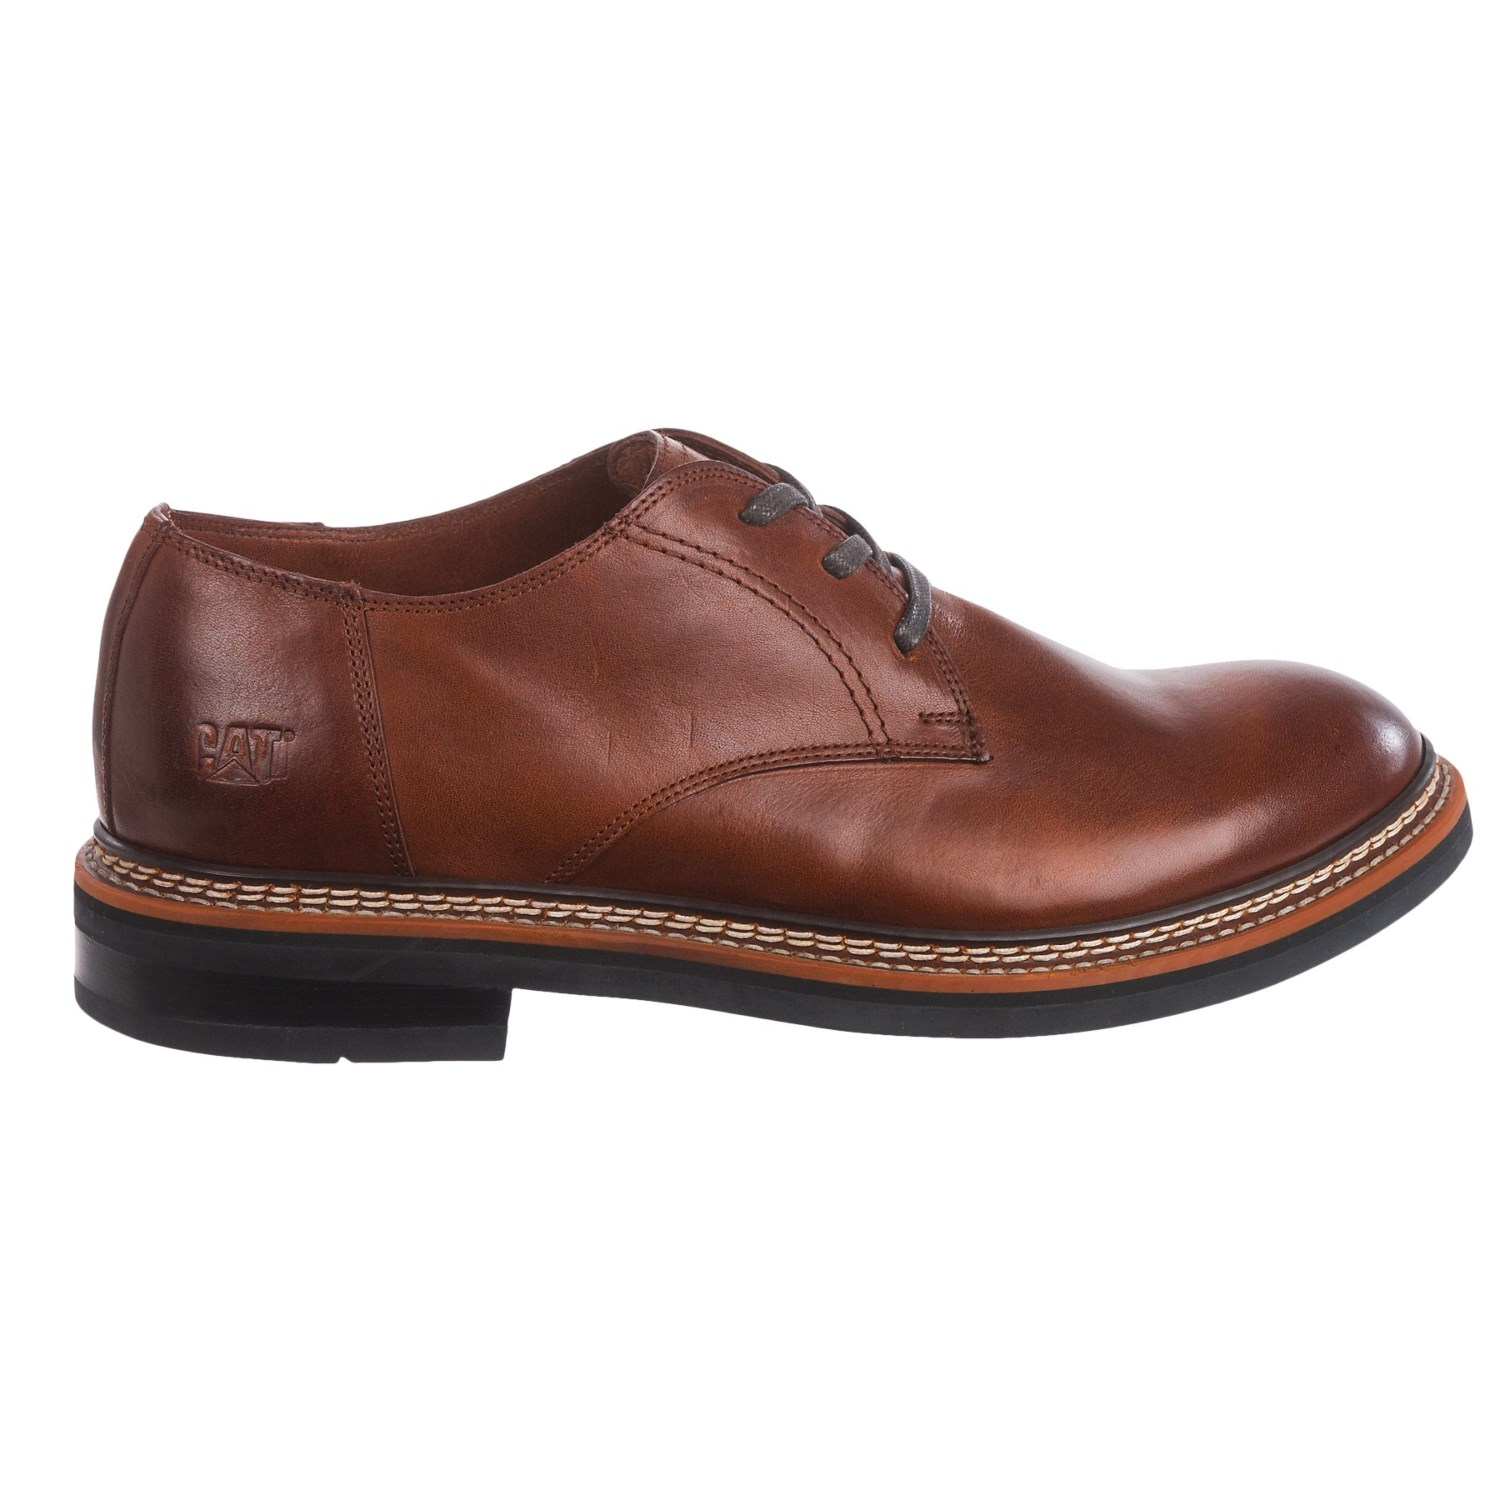 How To Clean Caterpillar Leather Shoes